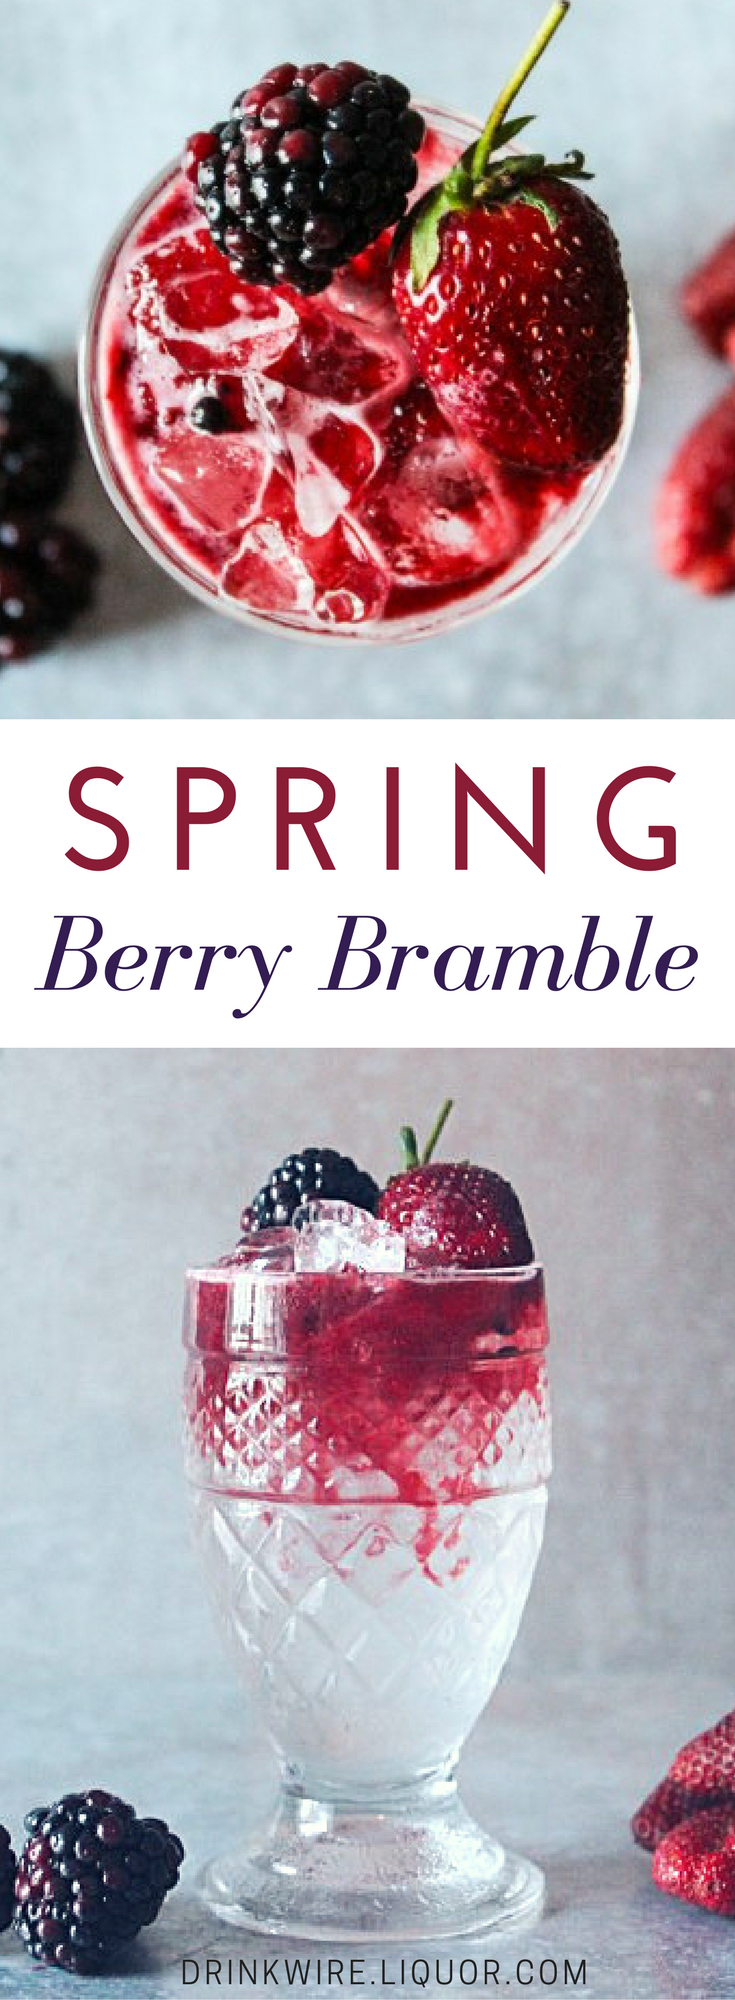 The Spring Berry Bramble is a Modern Classic You Should Know! This is a perfect recipe to get a head start on fresh berry cocktails for spring. Top your weekend off with this fresh and springy gin cocktail!